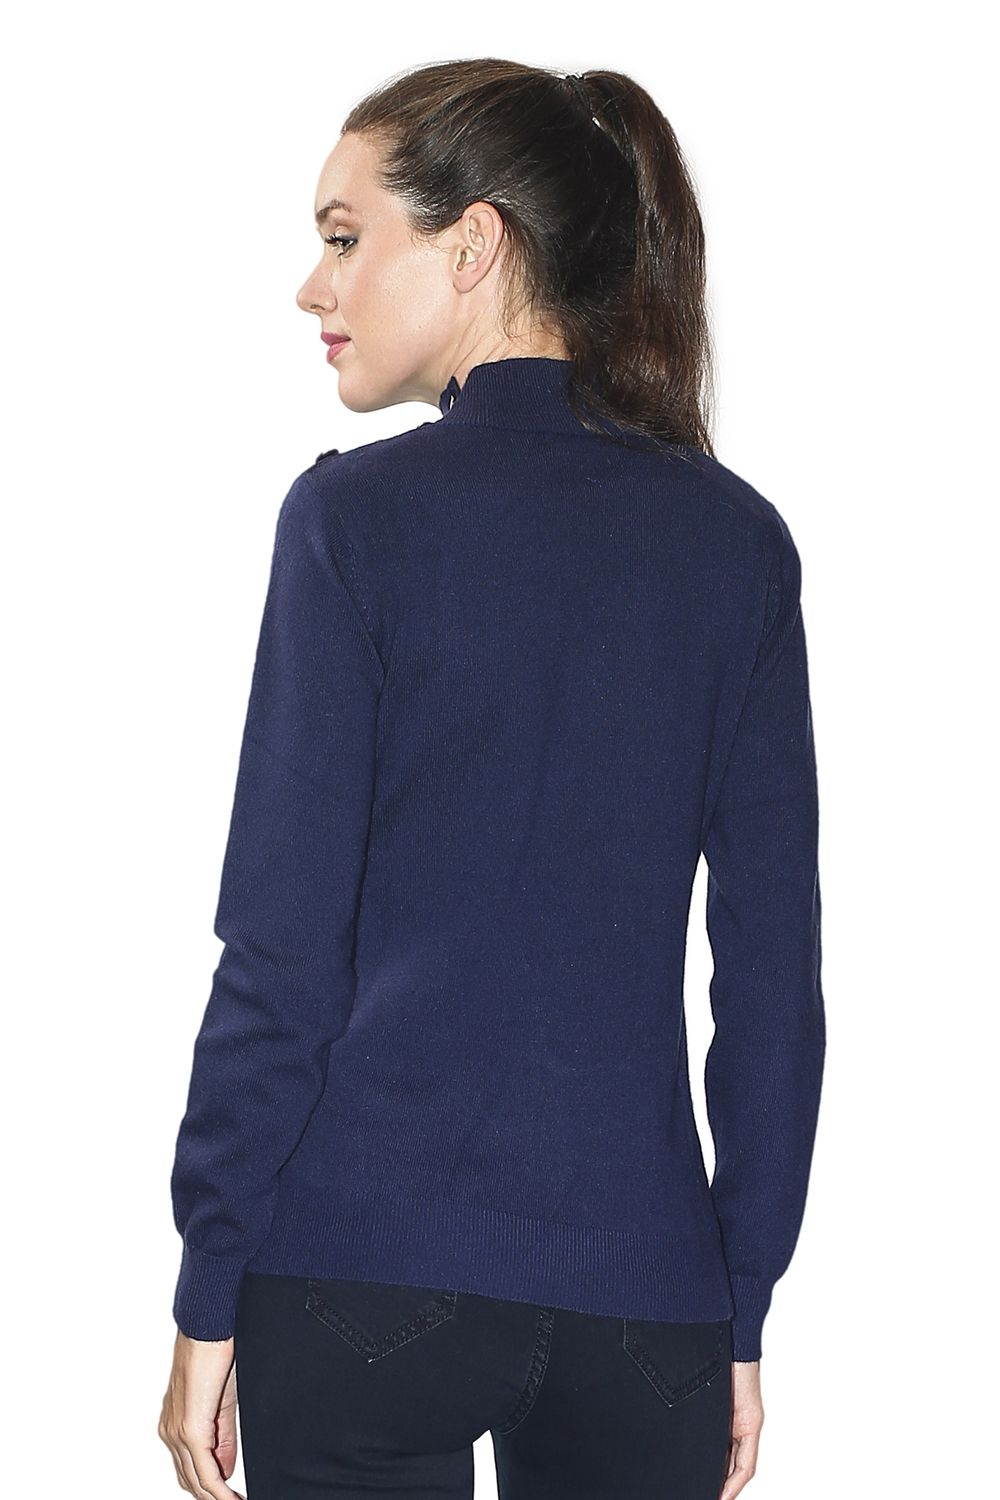 Assuili High Neck Sweater with Buttoned Shoulders in Navy